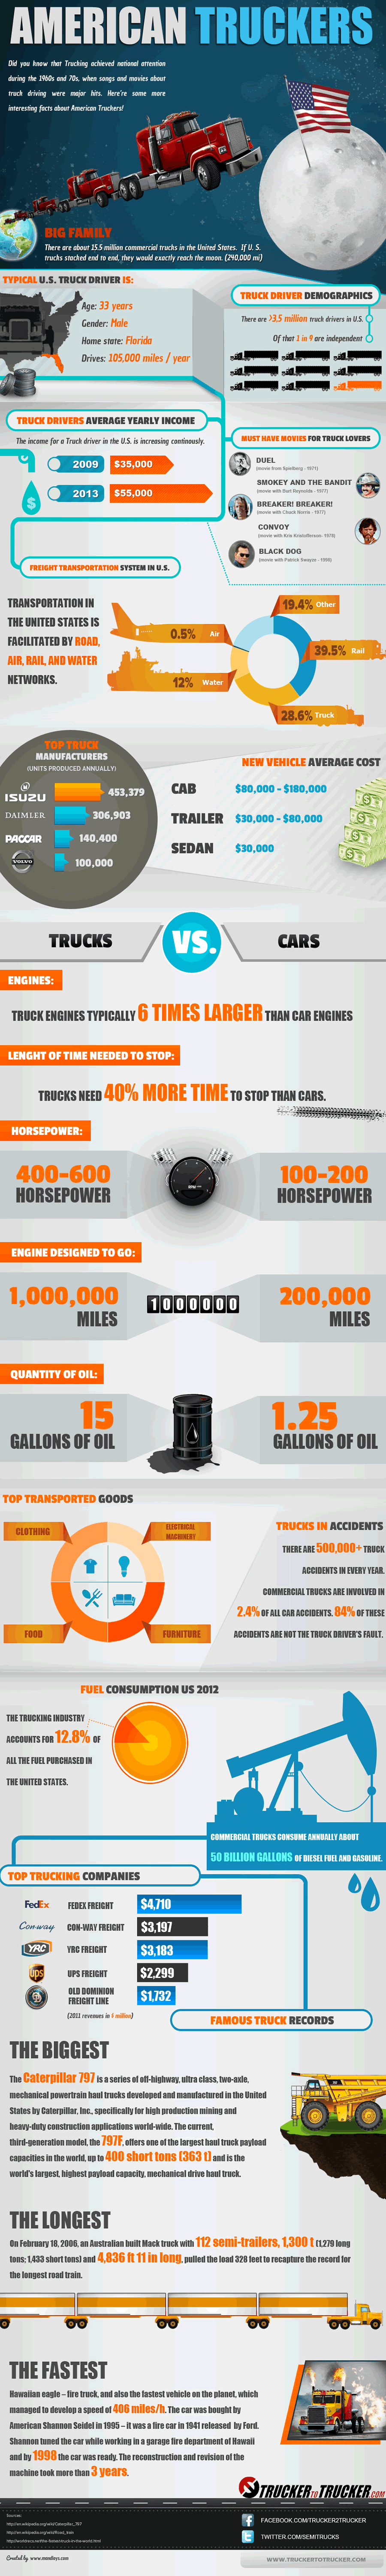 Facts about American Truckers